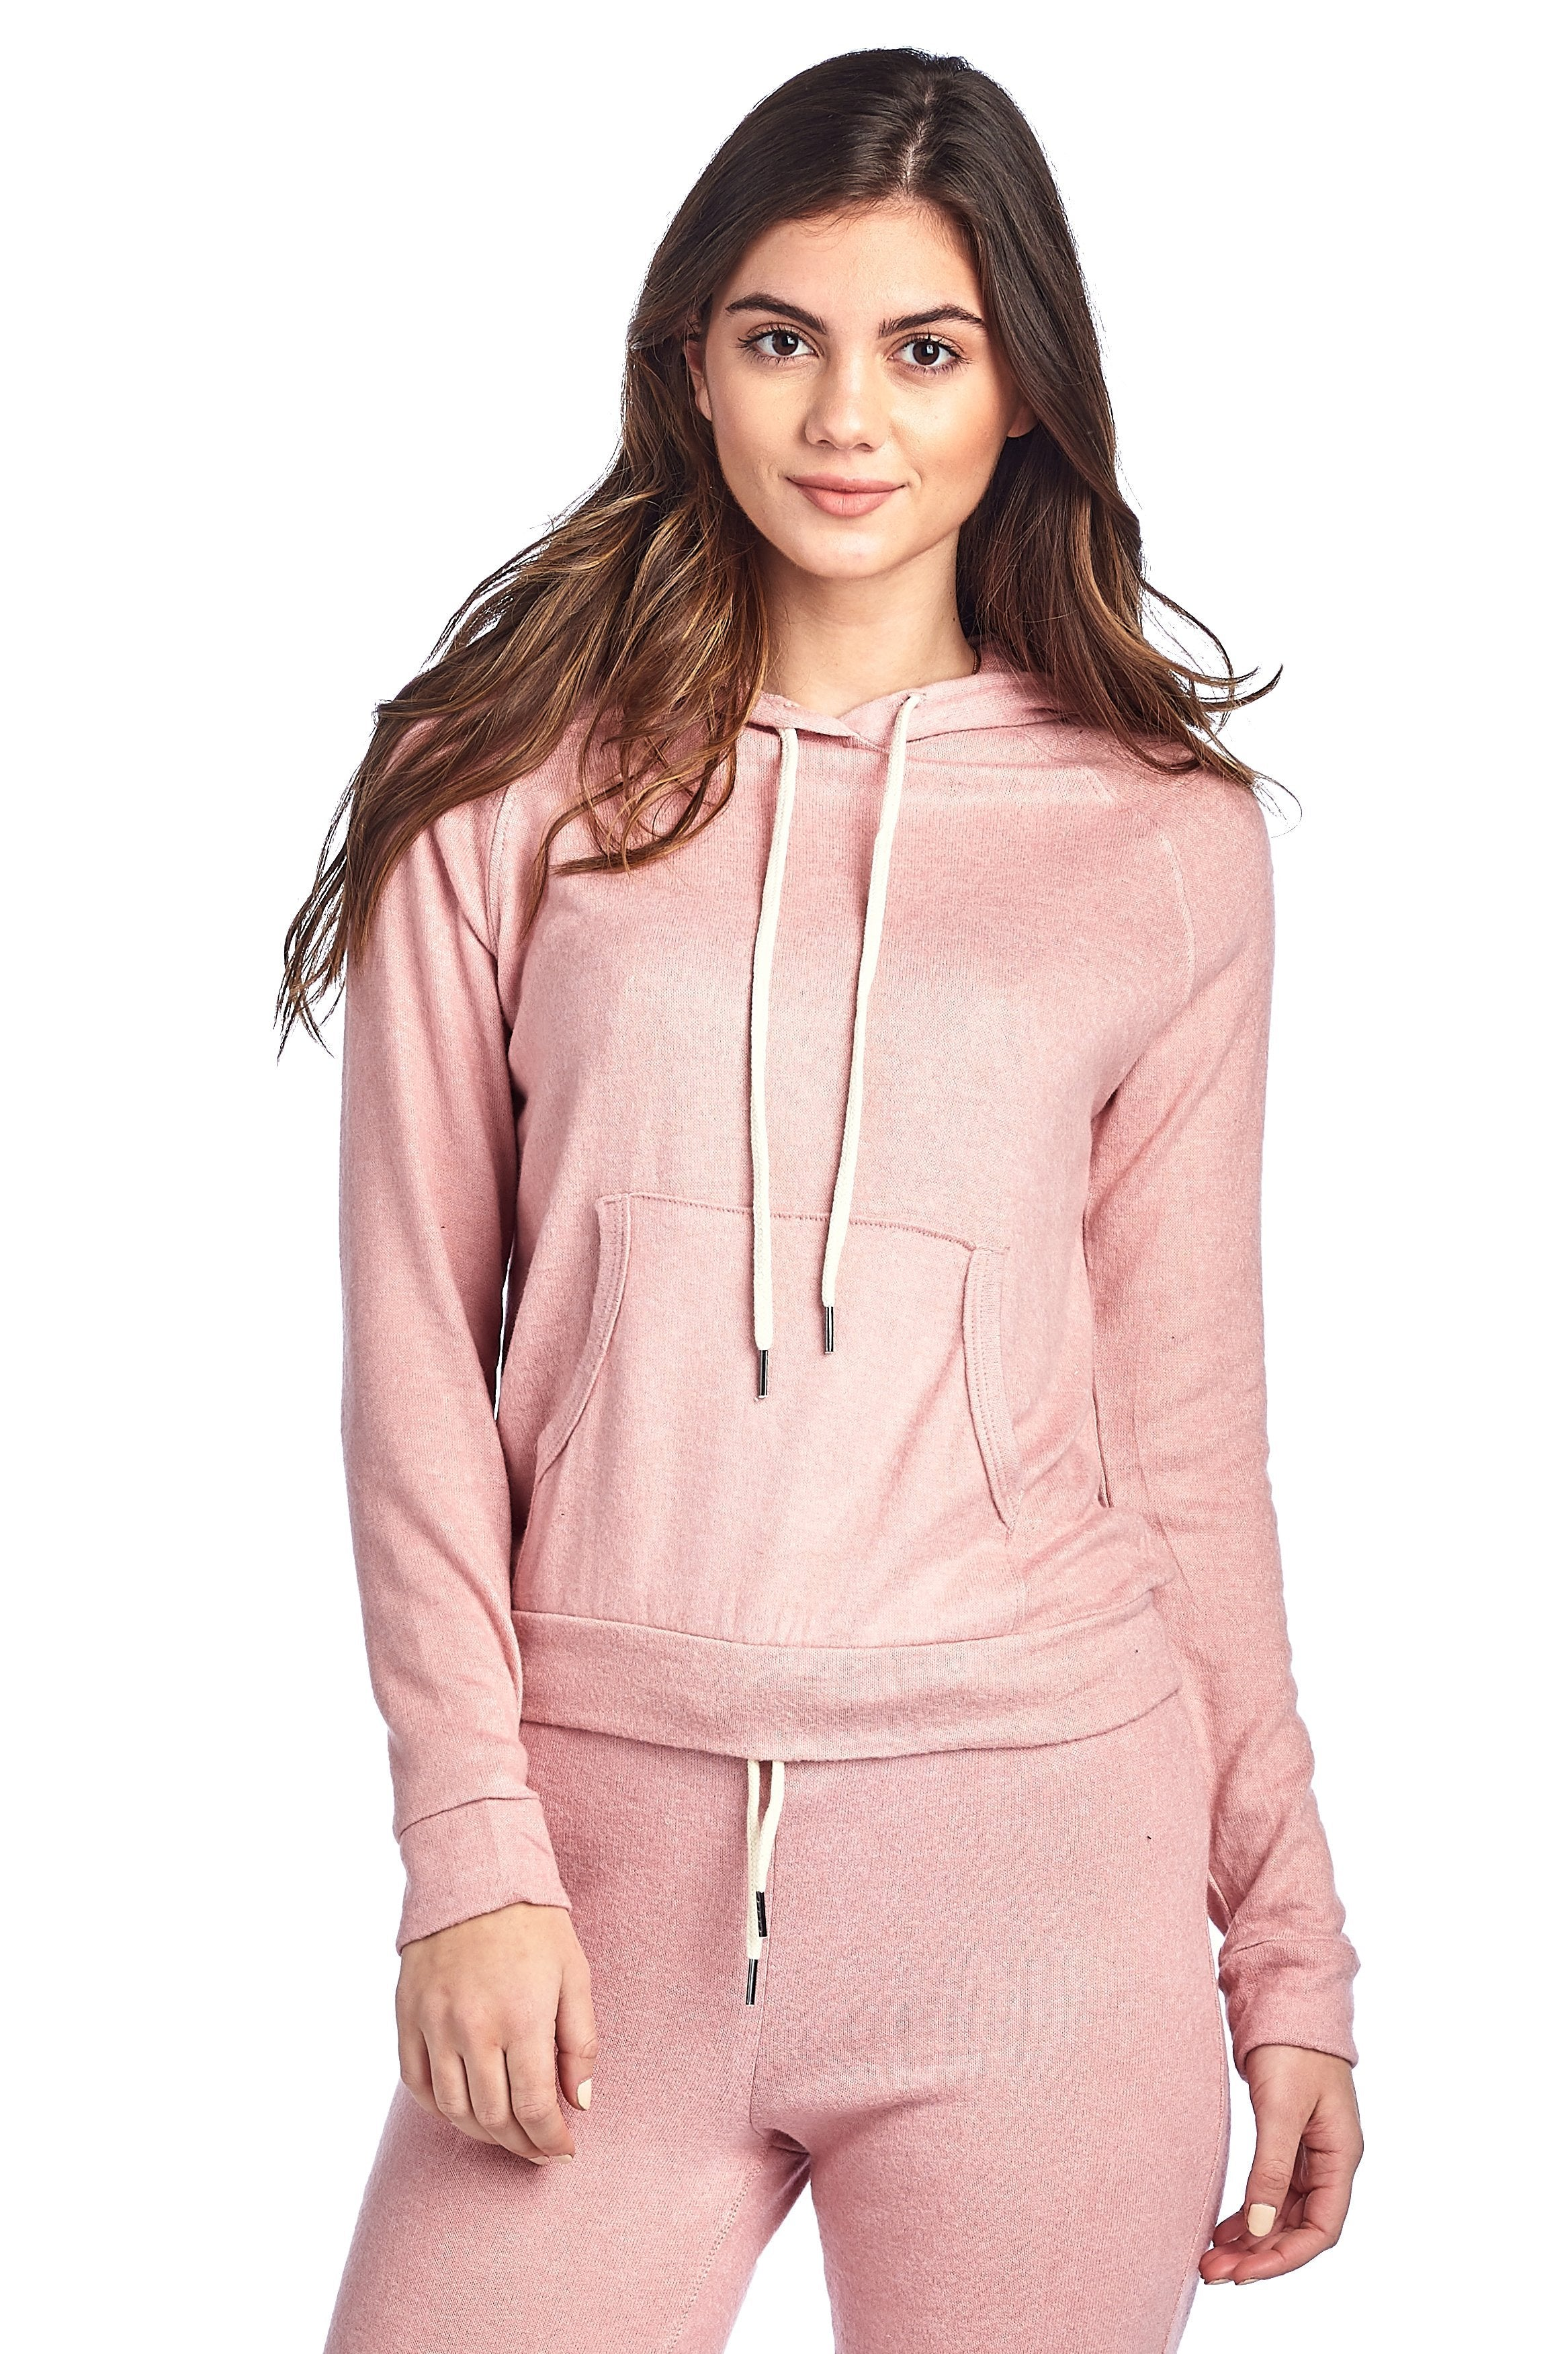 Light Weight Long Sleeve Brushed Drawstring Hoodie Pullover Sweater Top